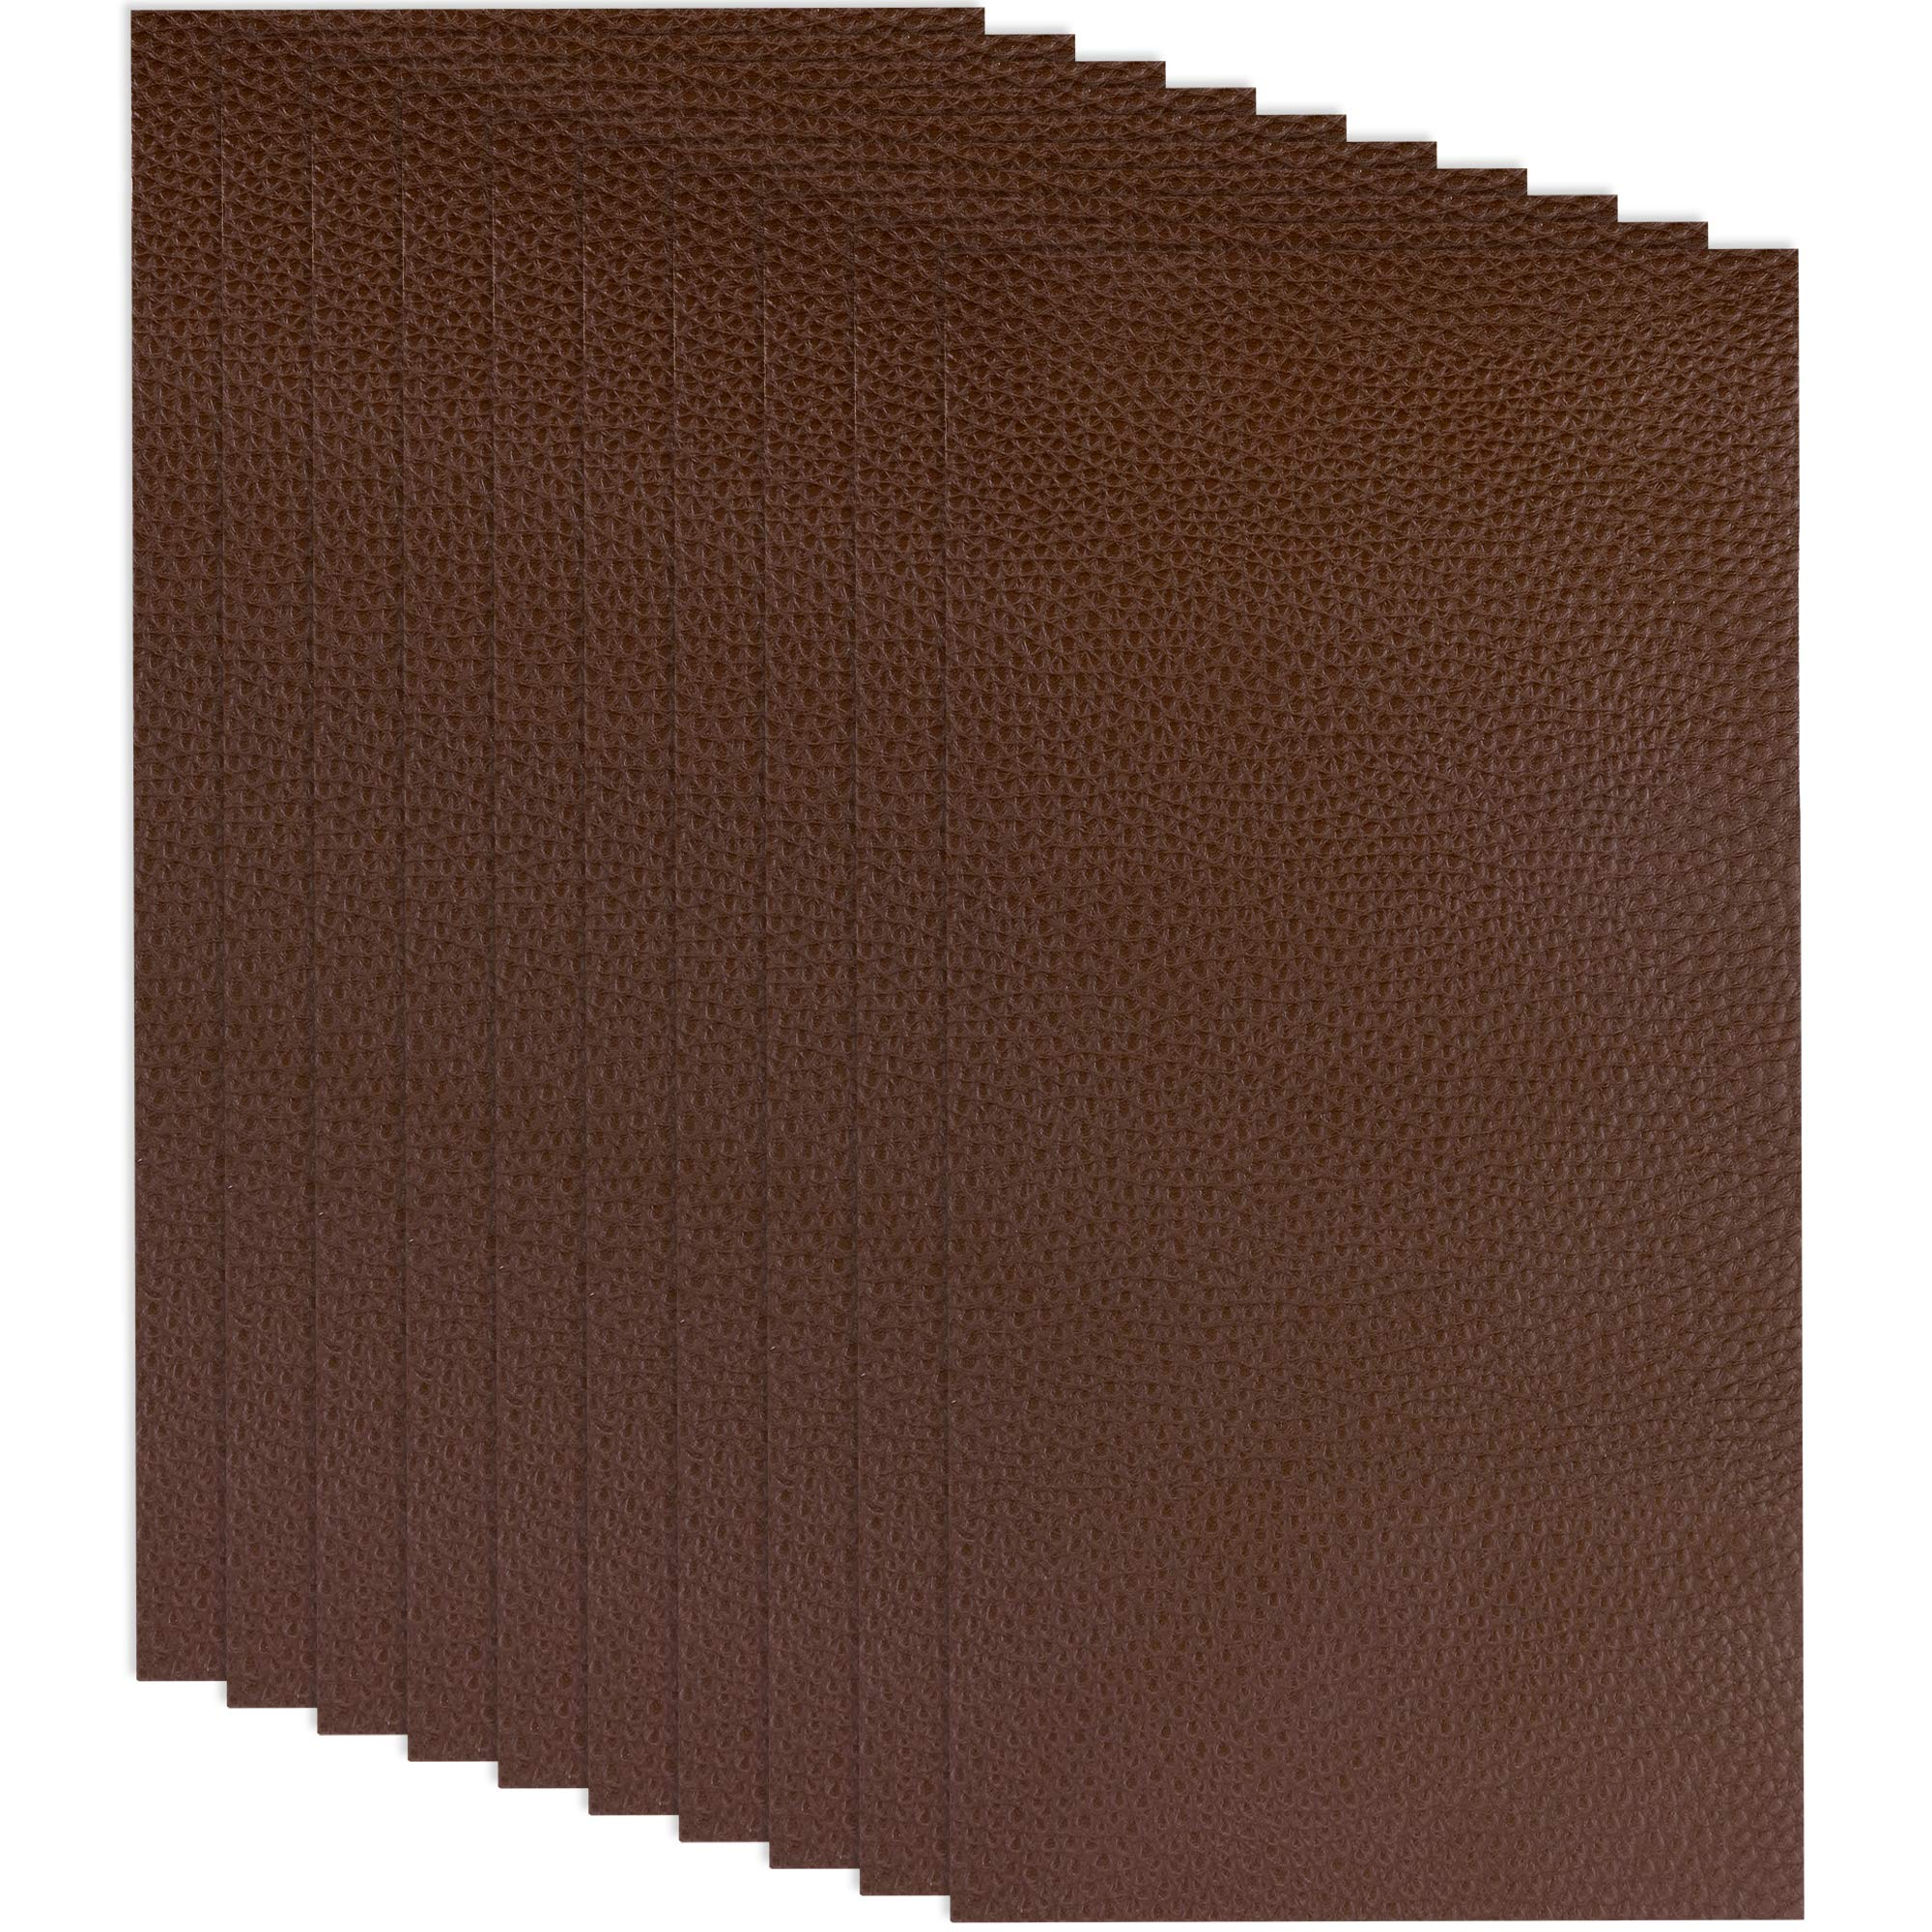 10 Pieces Leather Patches Leather Repair Kit for Couch Furniture Sofas Car Seats Handbags Jackets (Dark Brown)